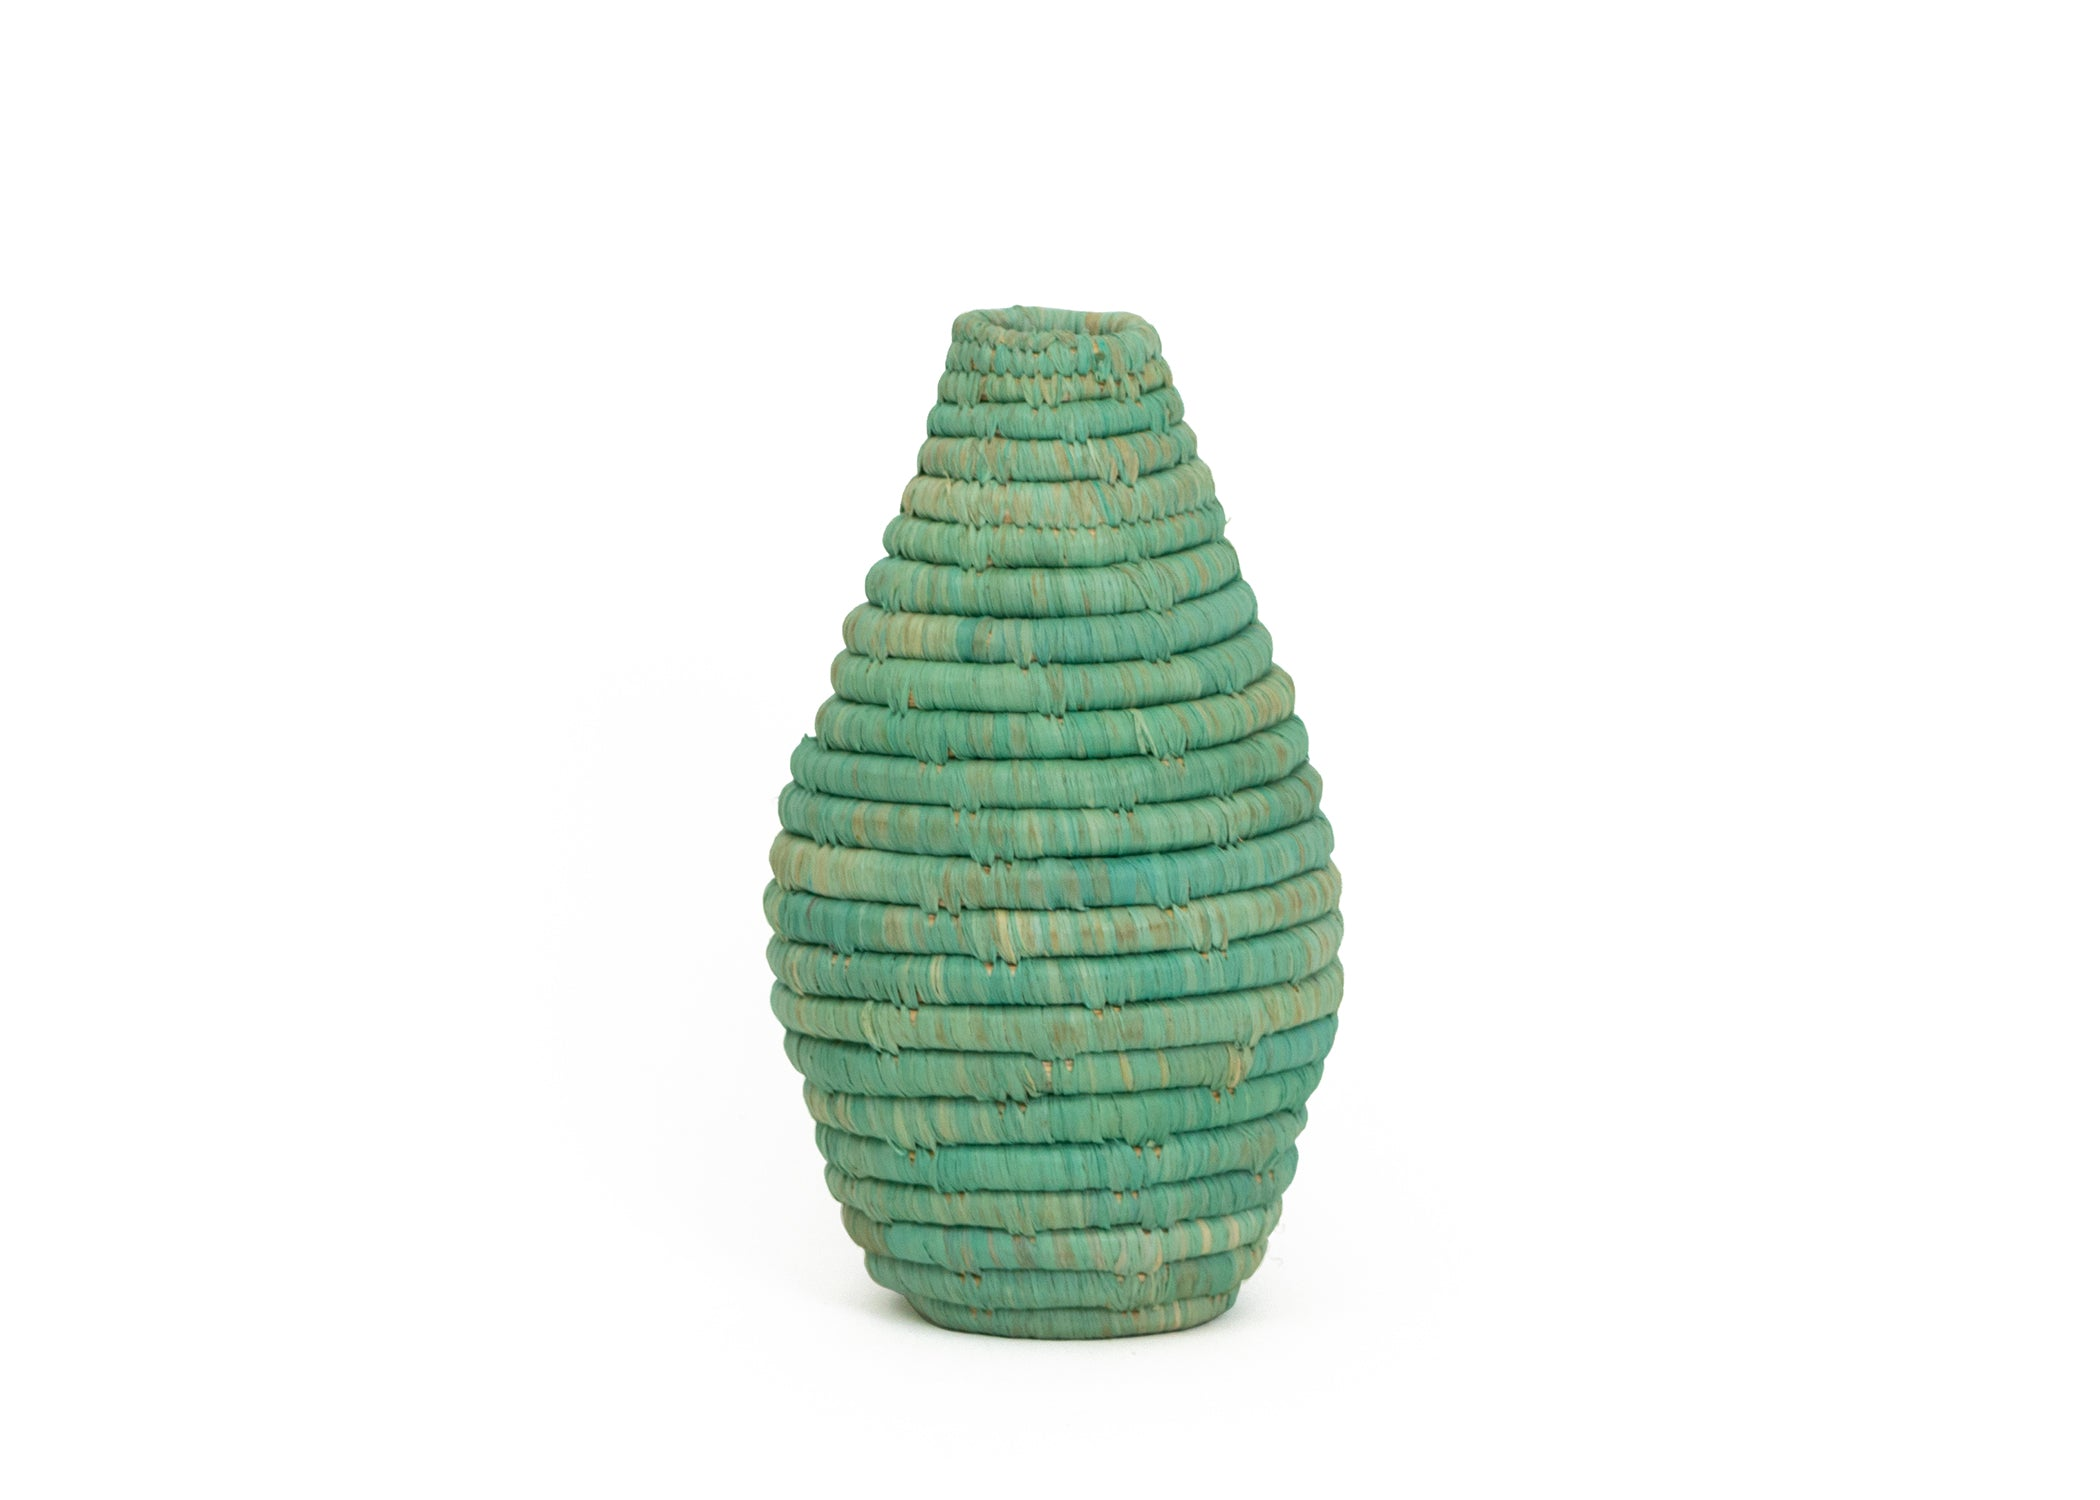 Bermuda Ziwa Decorative Vase - KAZI - Artisan made high quality home decor and wall art